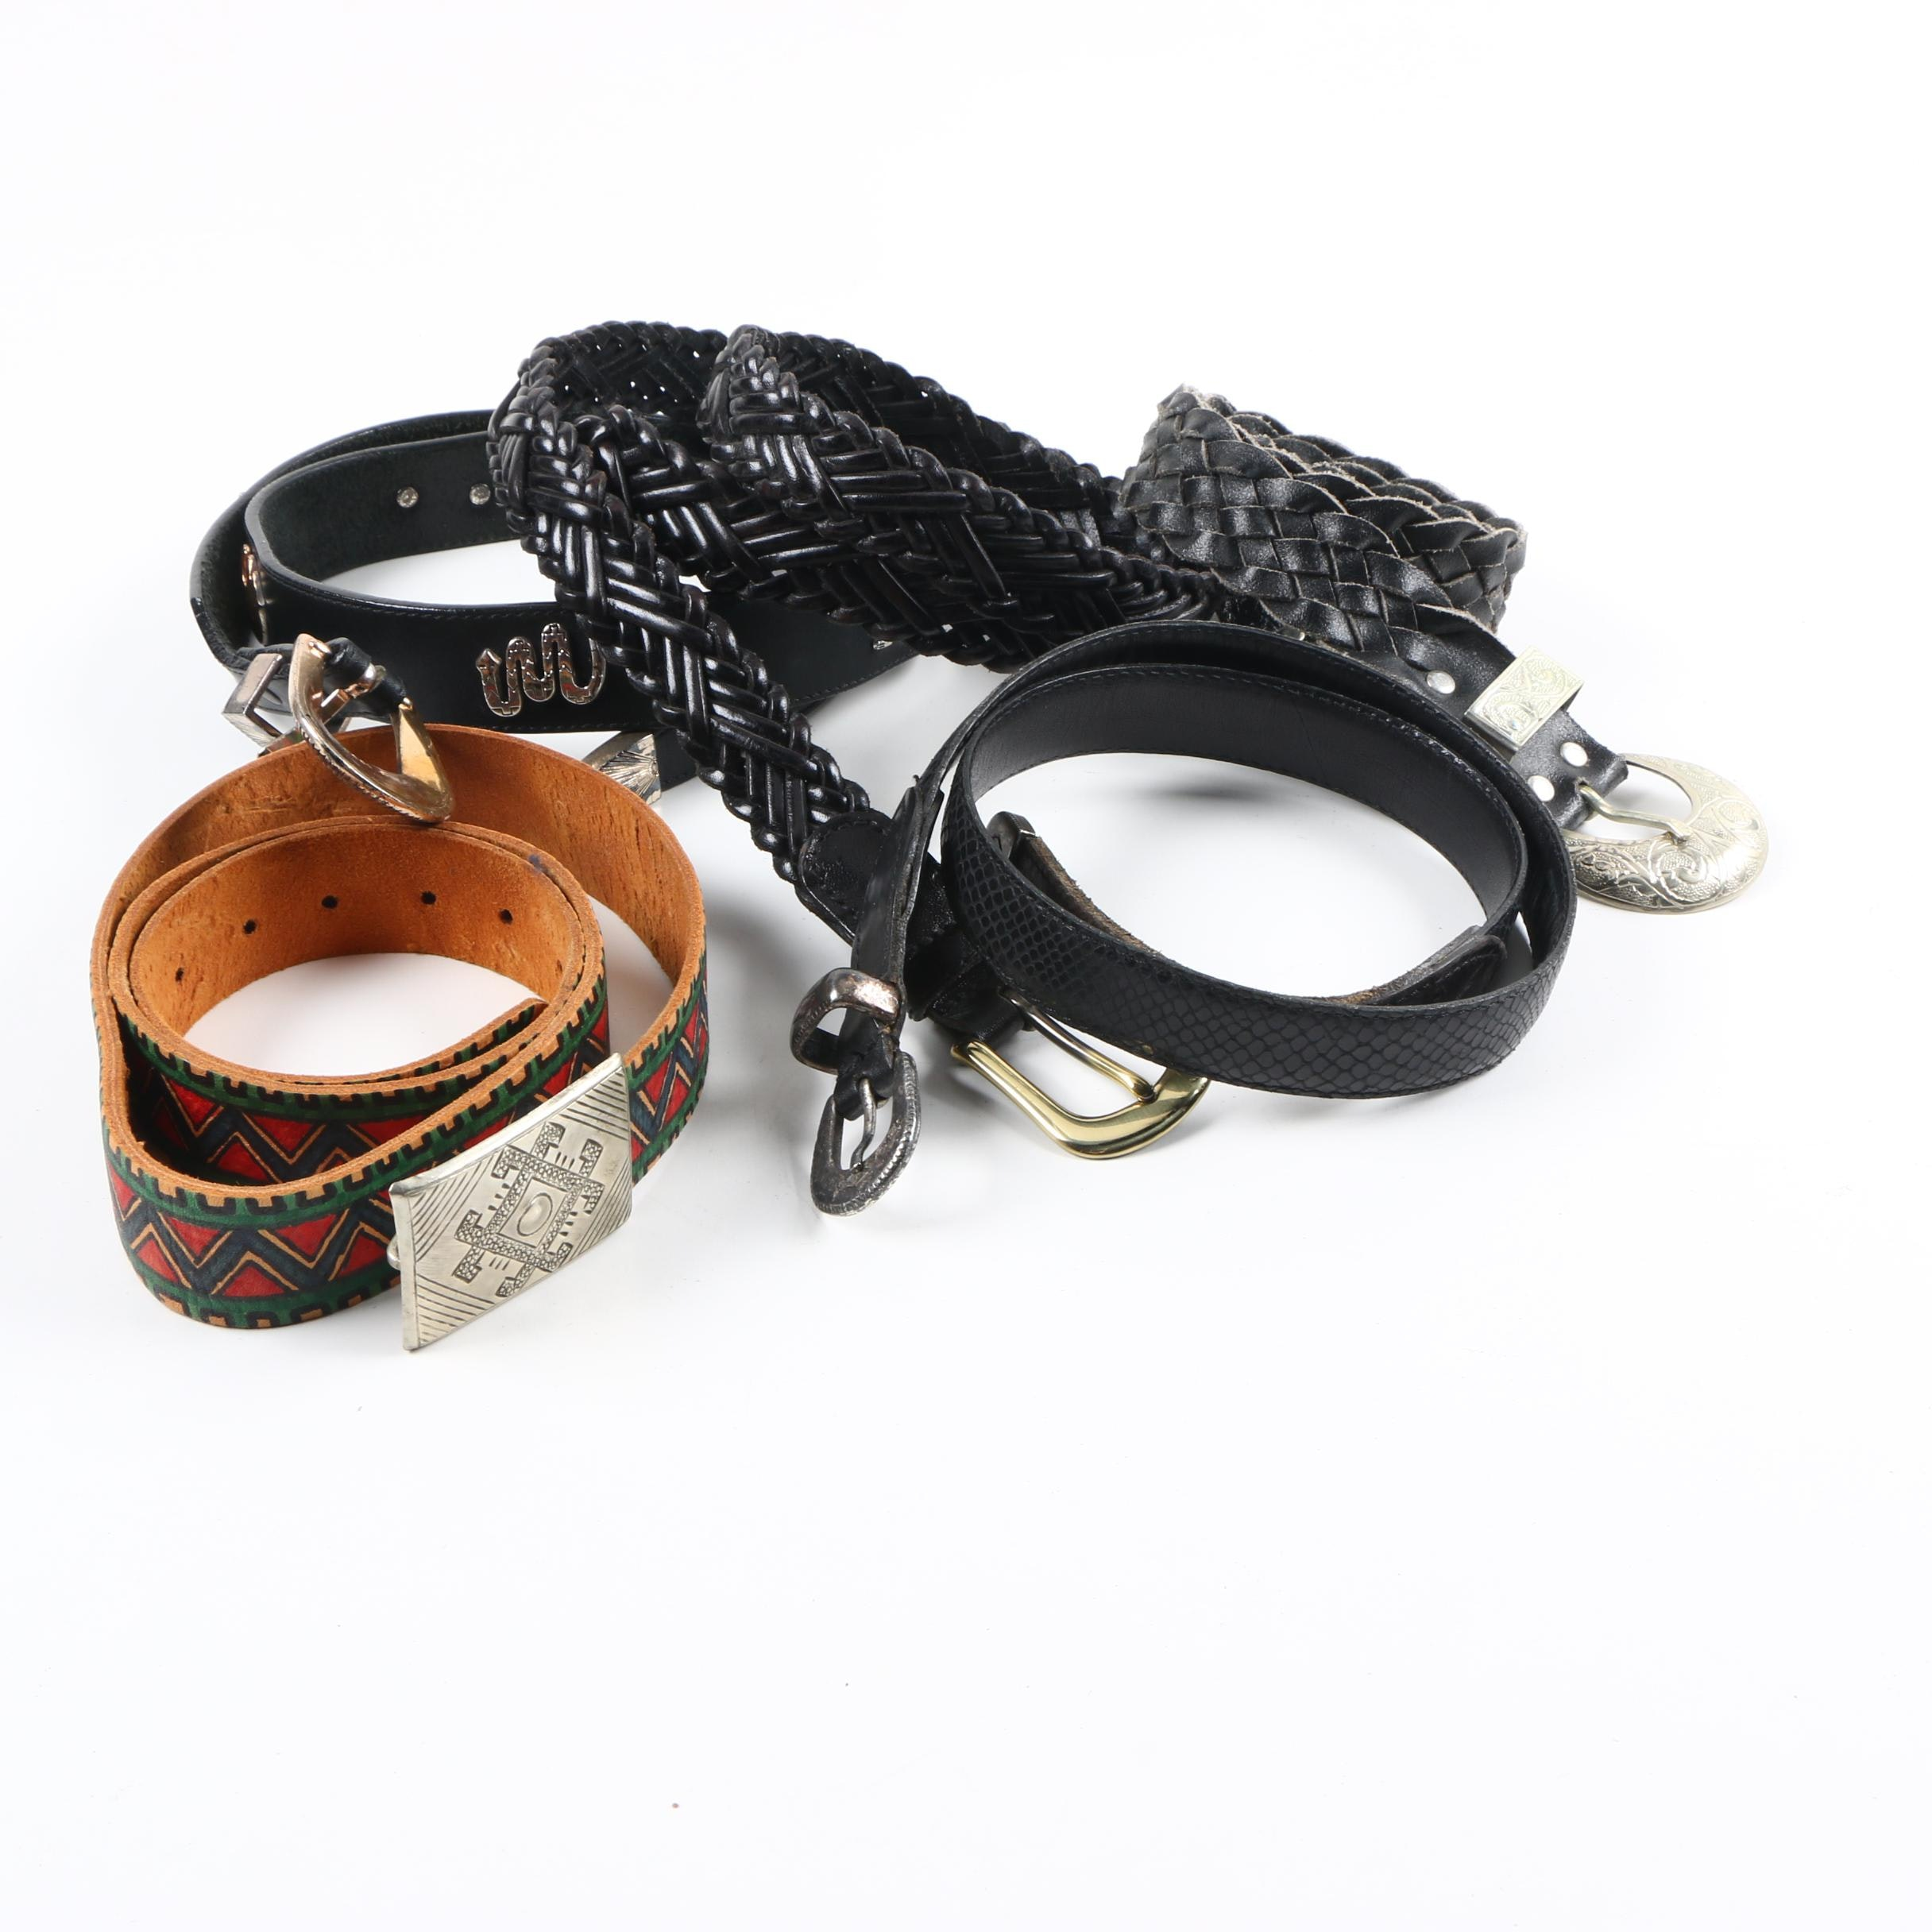 Assortment of Leather Belts